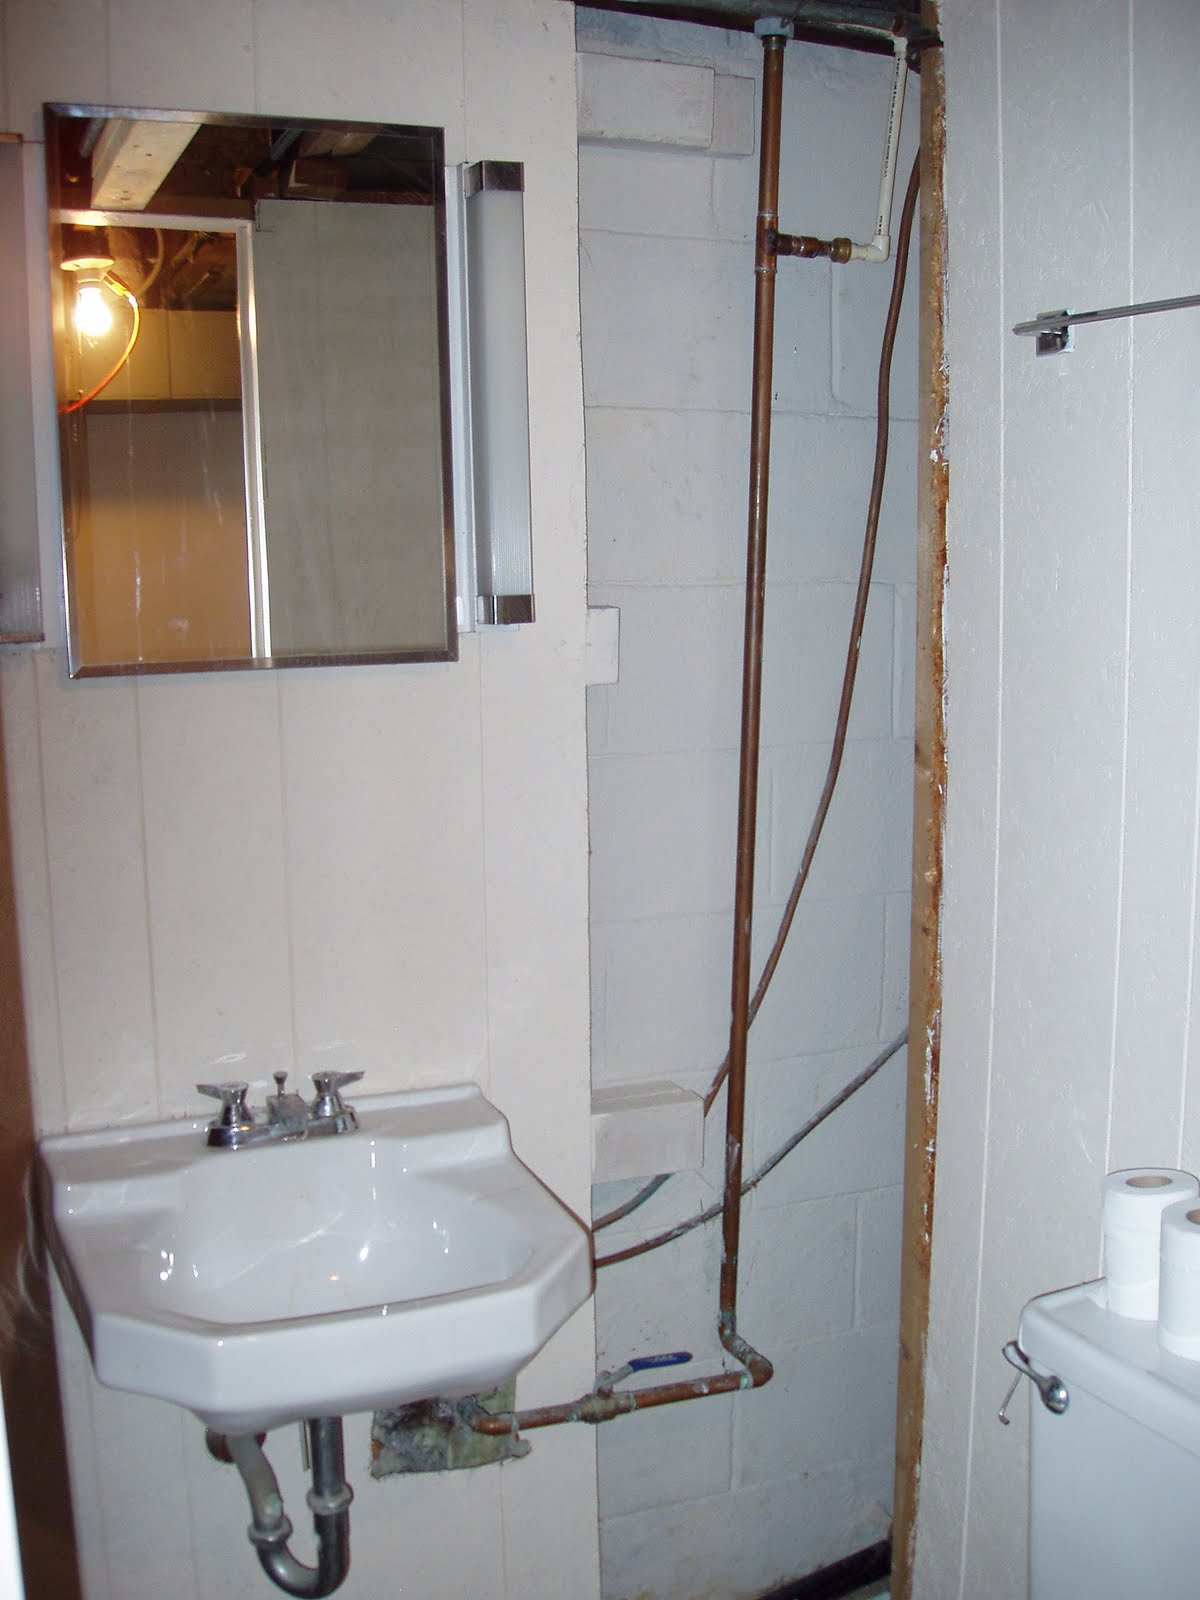 was looking at houses this bathroom was actually considered a bathroom i dont know about the rest of you but would you even wash your hands in there